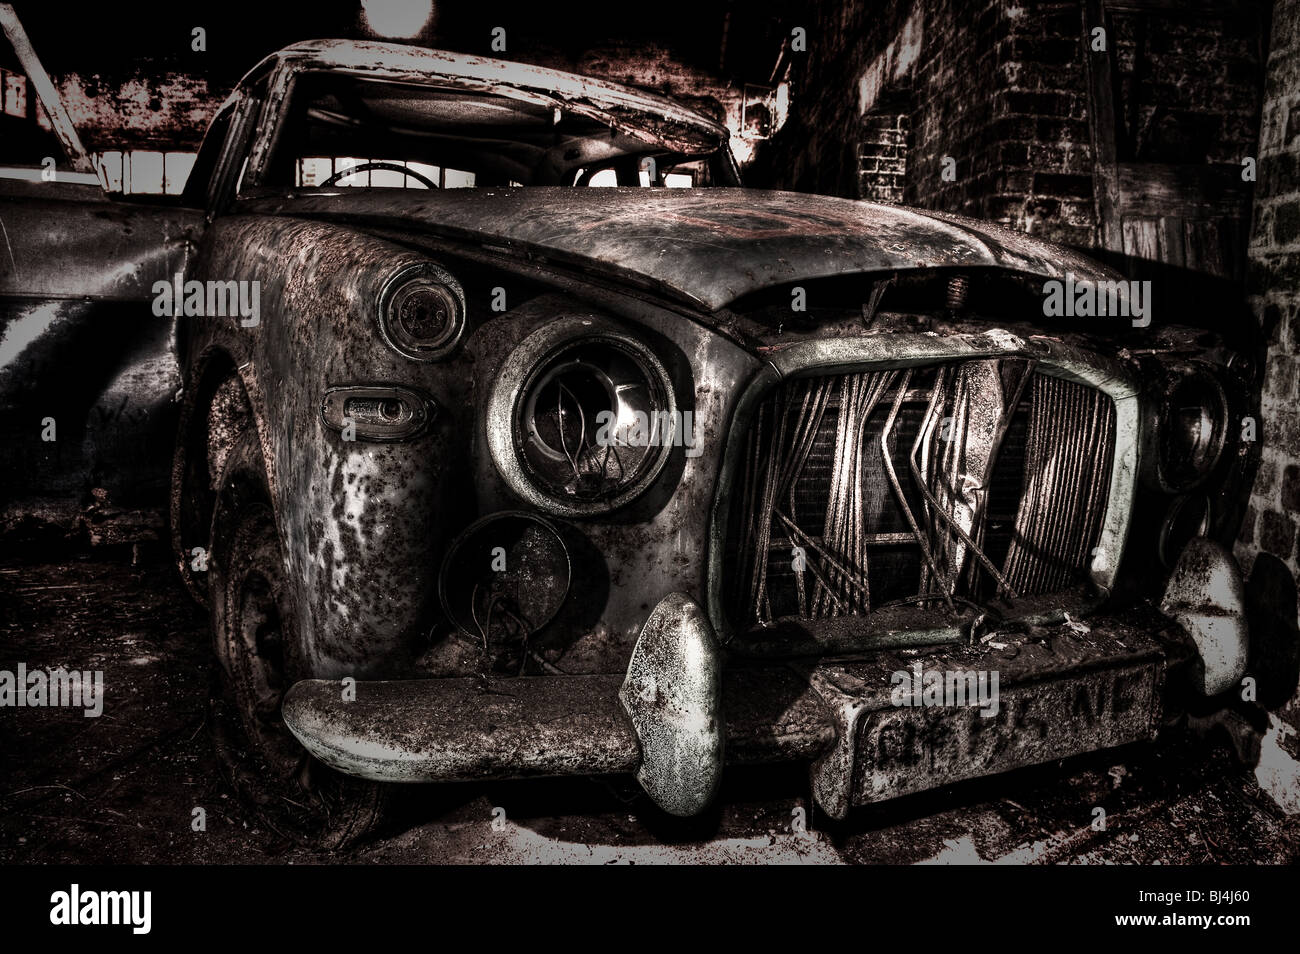 Abandoned old car in a derelict air base - Stock Image